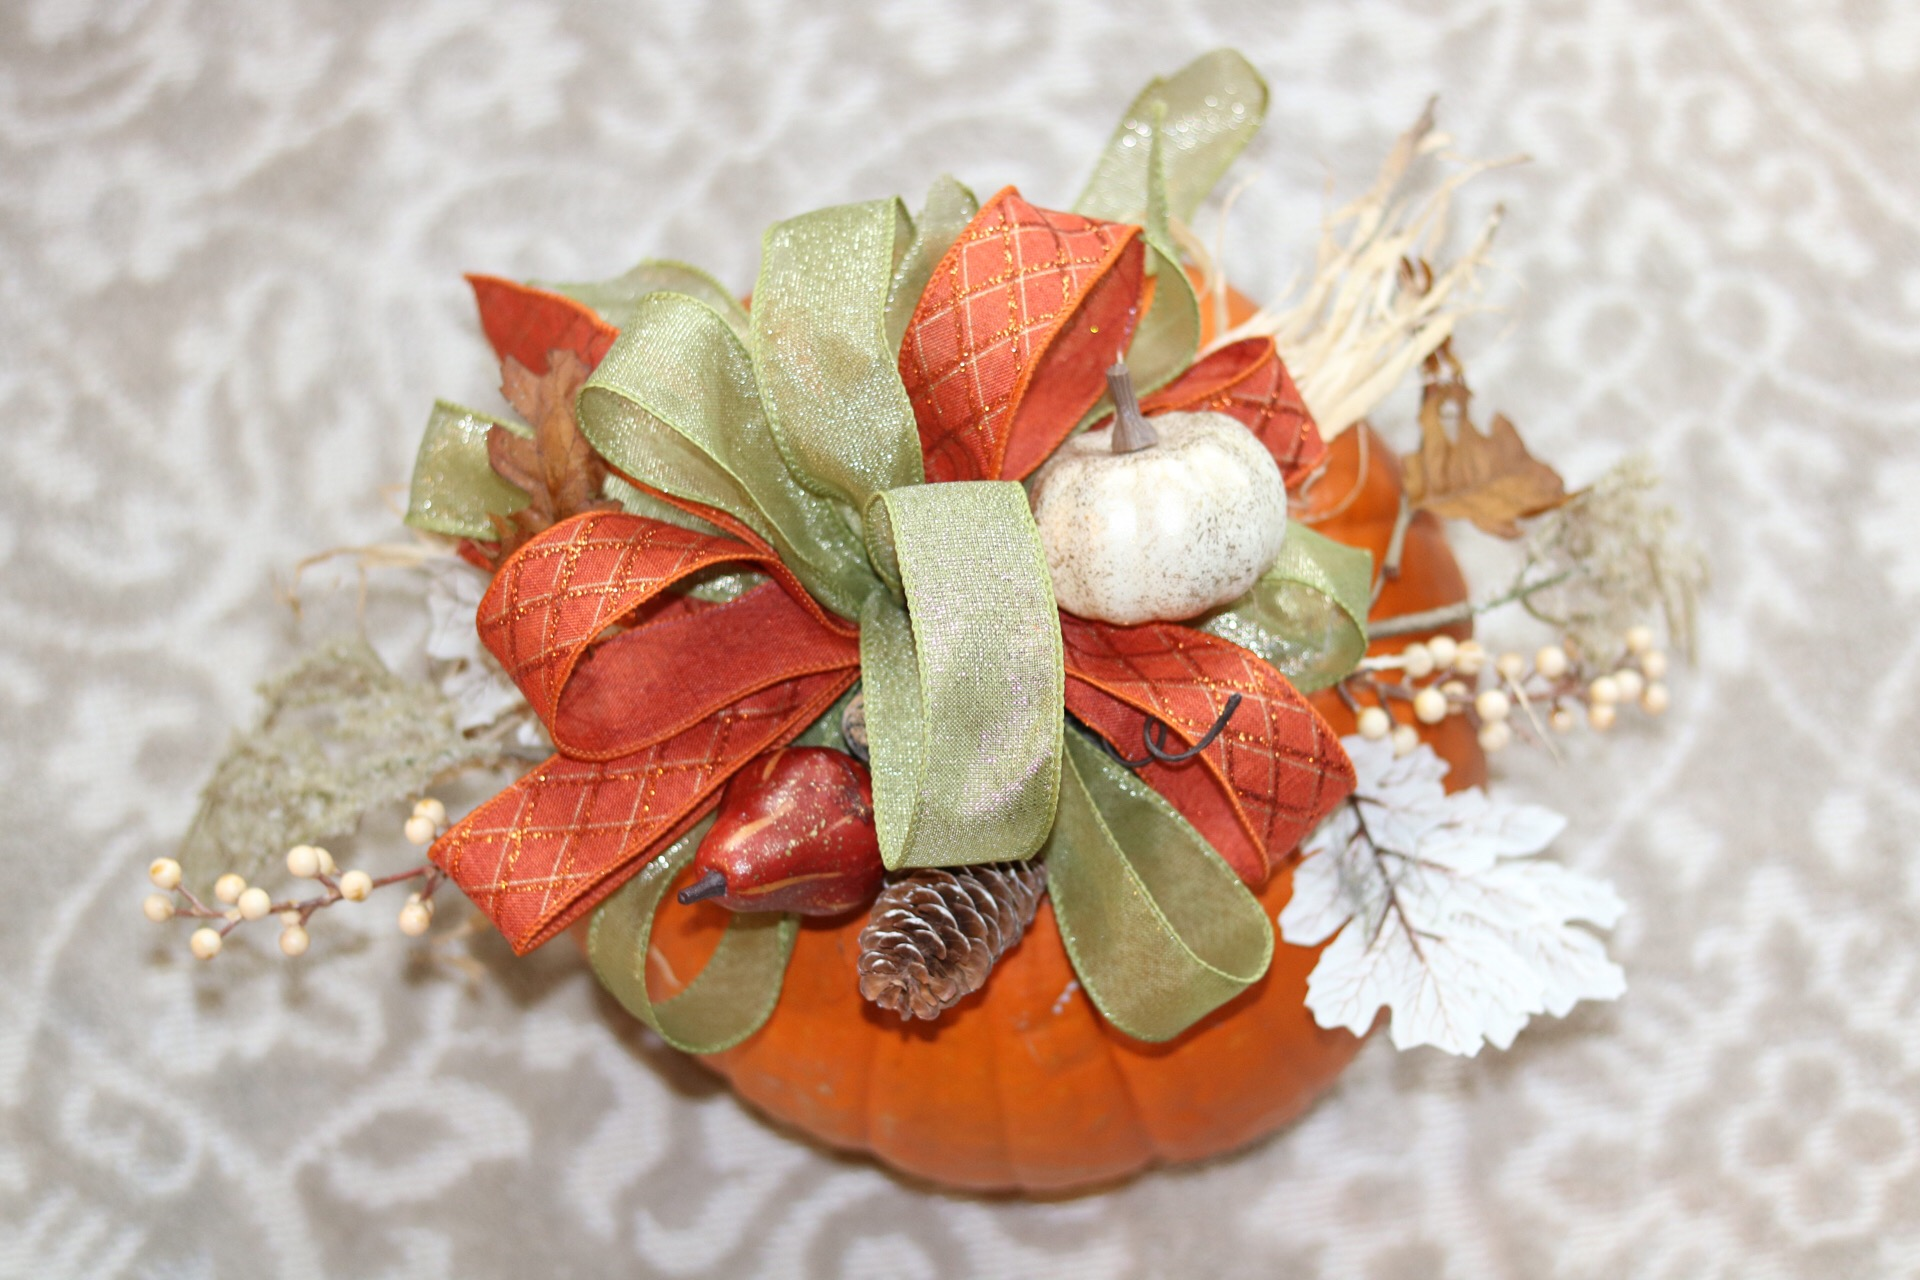 Are you wanting to create a custom fall centerpiece, but don't know where to start? If you grew pumpkins in your summer garden or are picking one from a local pumpkin patch, follow this easy DIY to create your own unique pumpkin centerpiece!